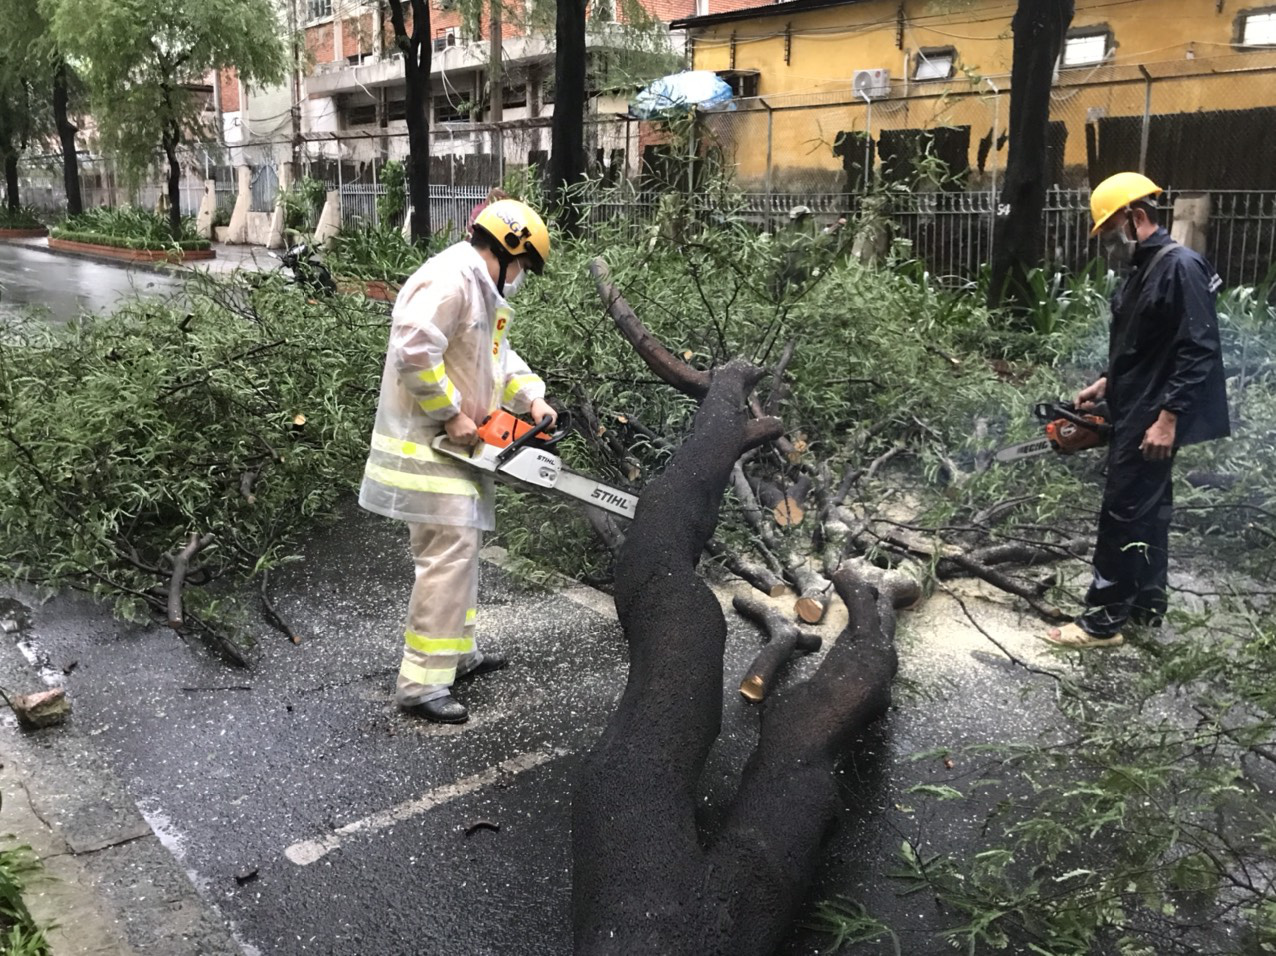 Officers deal with an uprooted tree on Ly Tu Trong Street in District 1, Ho Chi Minh City, July 19, 2021. Photo: Dan Thuan / Tuoi Tre